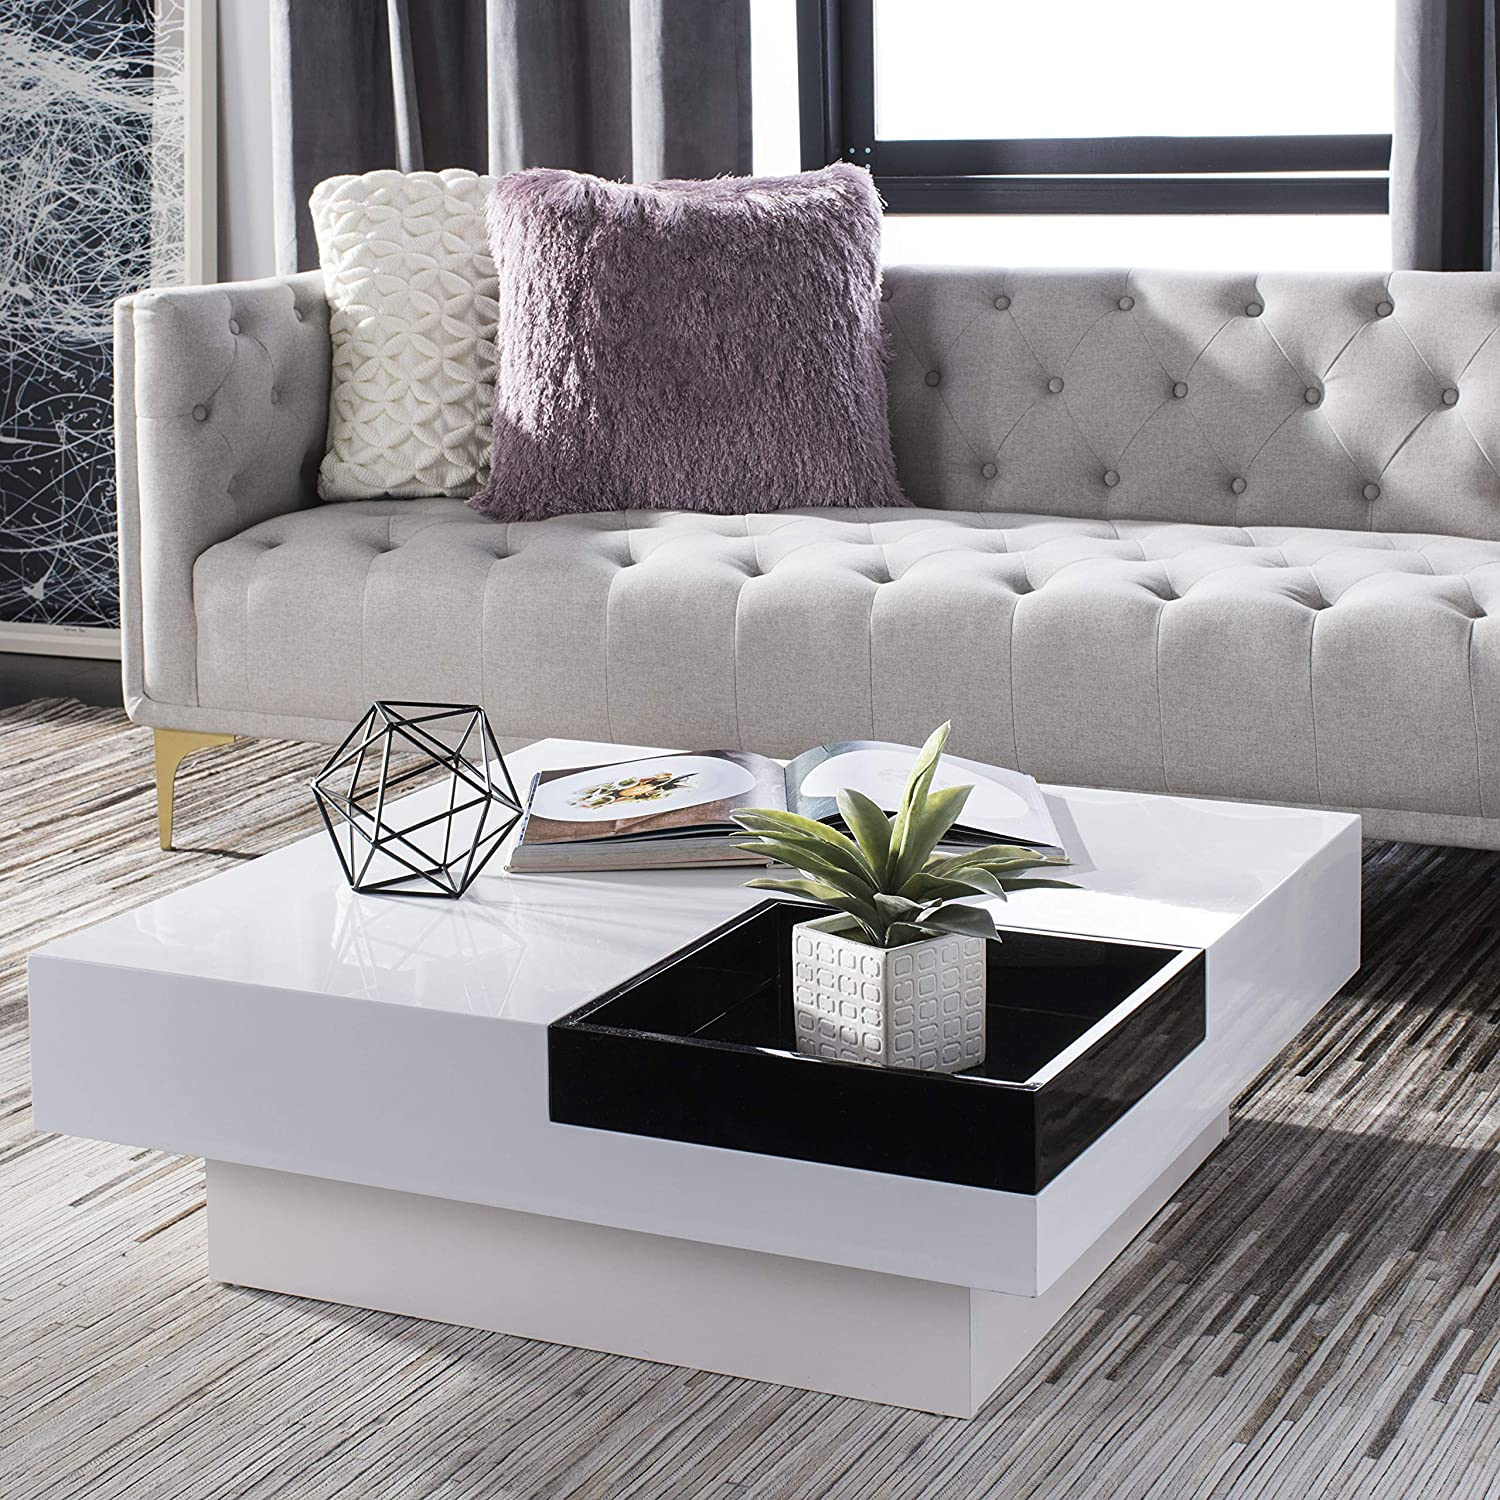 white-high-gloss-coffee-table-with-black-tray-compartment-42-inch-tabletop-modern-living-room-furniture-for-sale-online